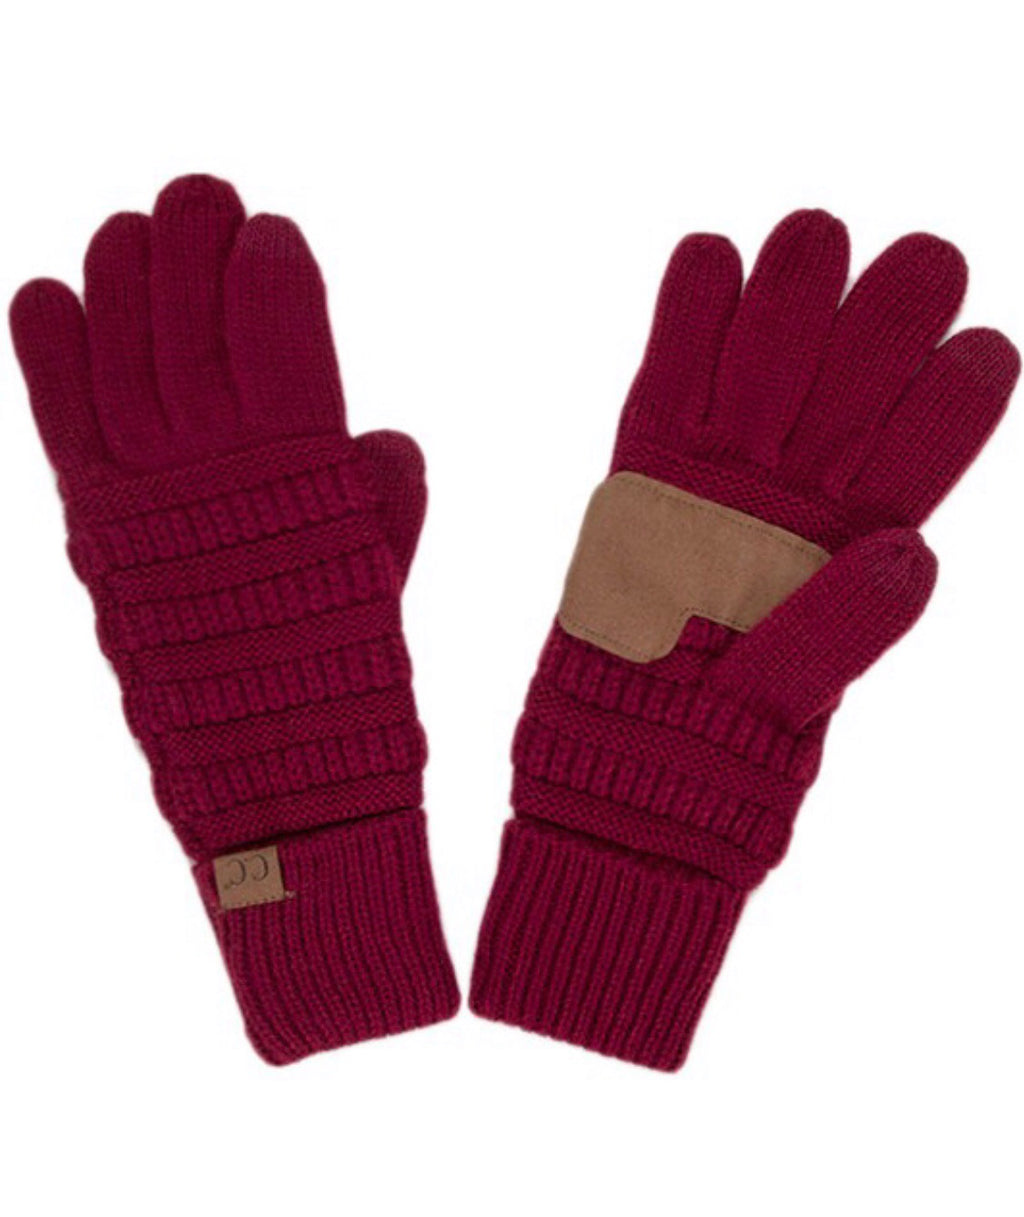 CC Knitted Touch Screen Compatible Gloves